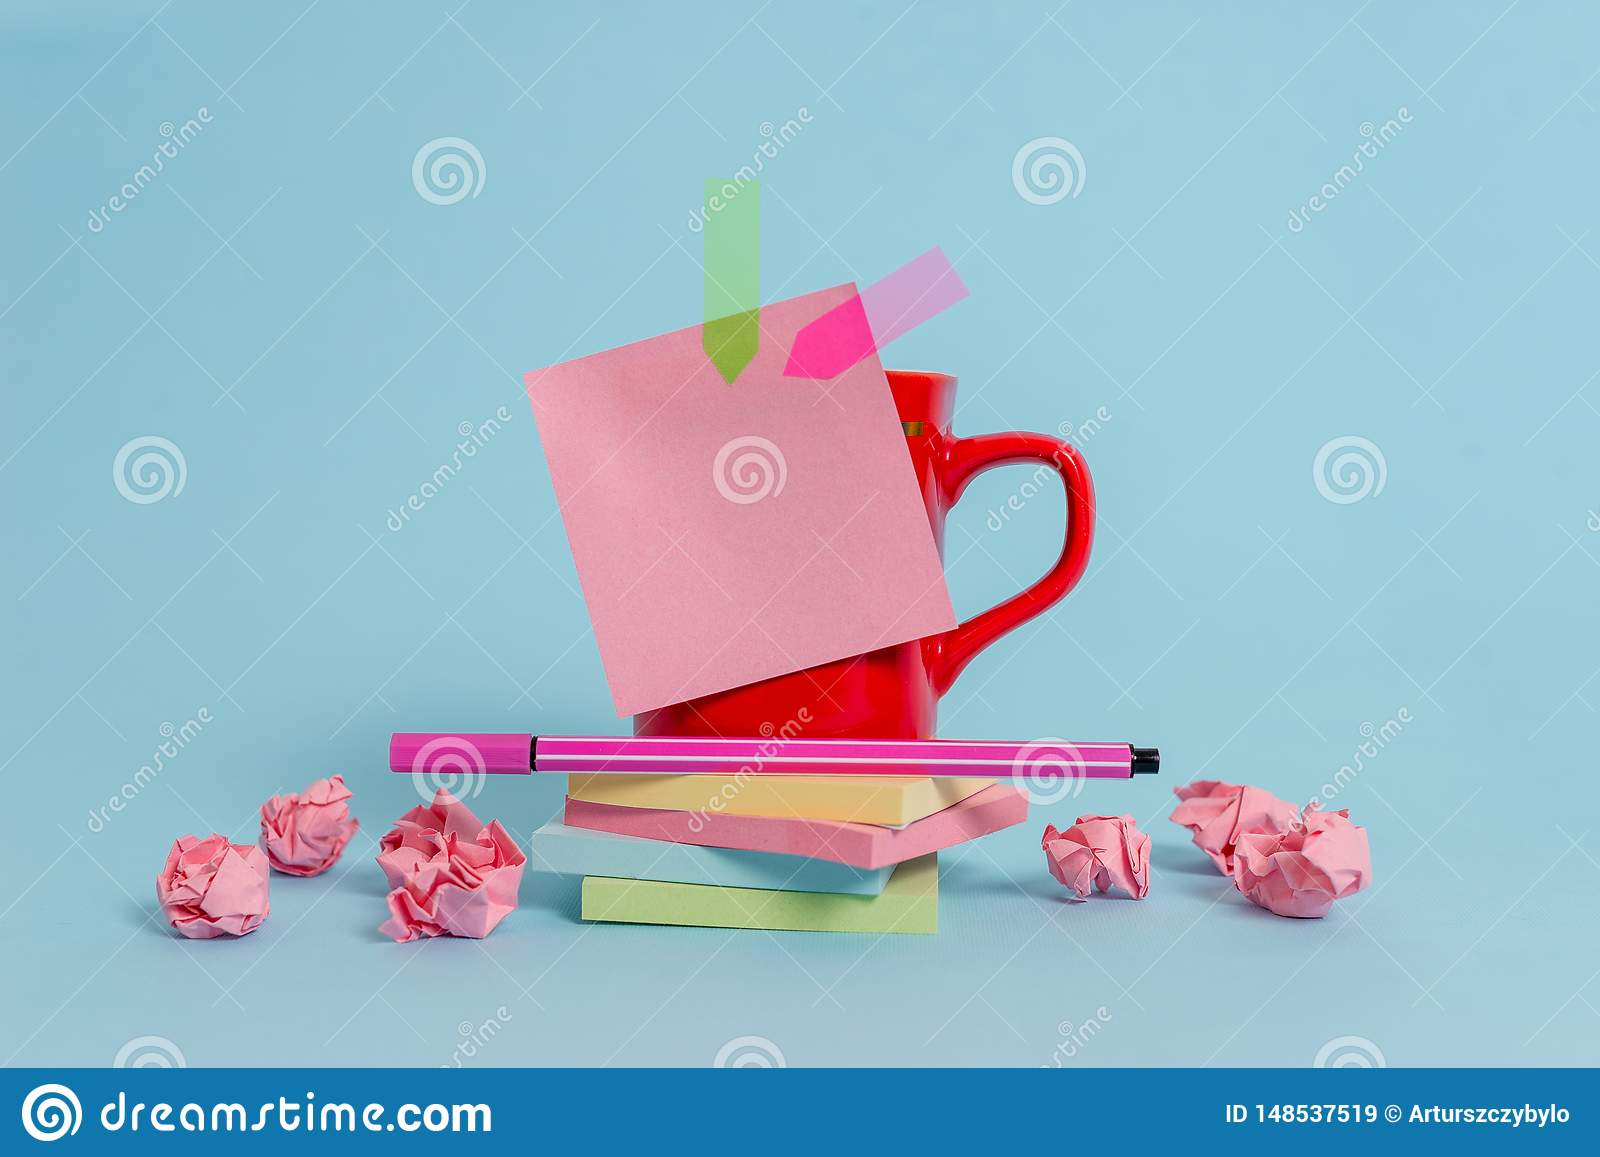 Front view coffee cup colored sticky note arrow banners crushed paper balls stacked pads pen lying beautiful pastel